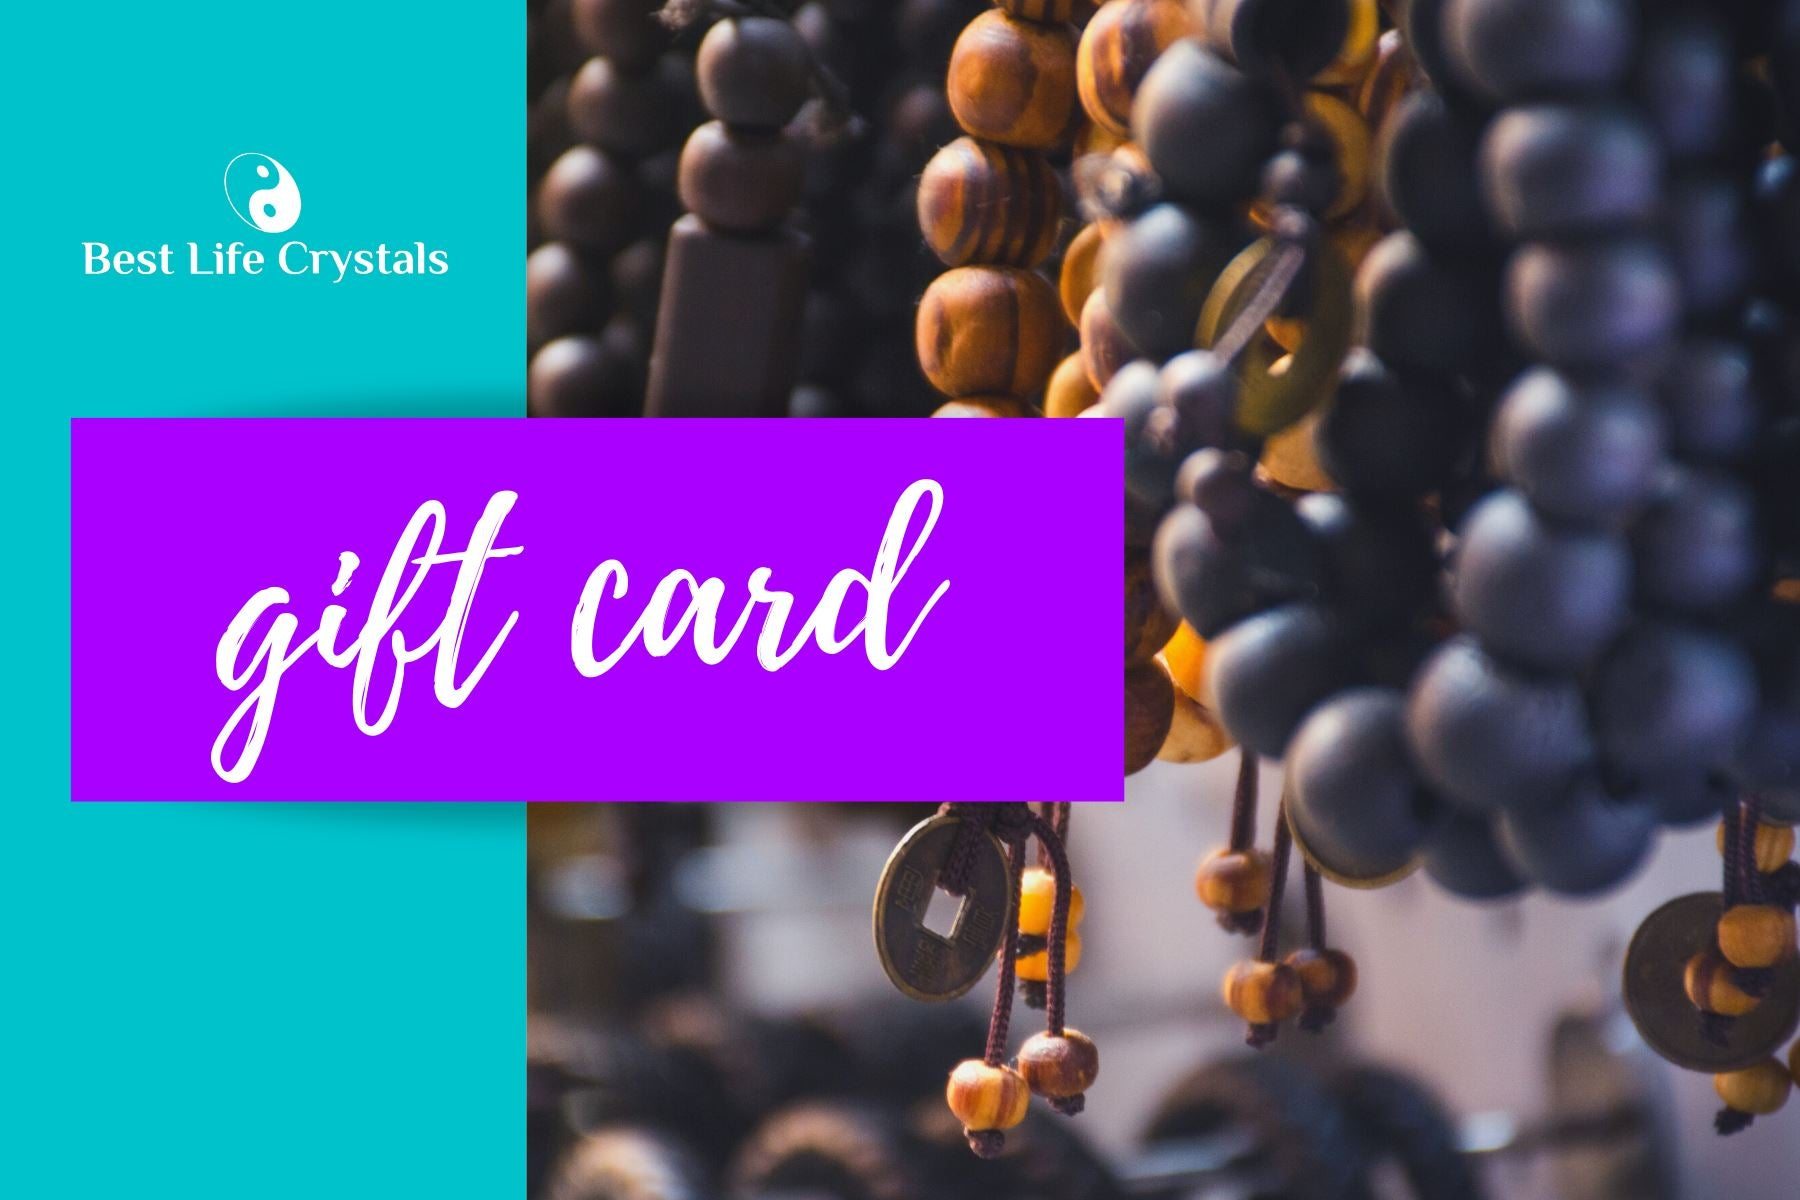 Best Life Crystals Gift Card $100 - Best Life Crystals